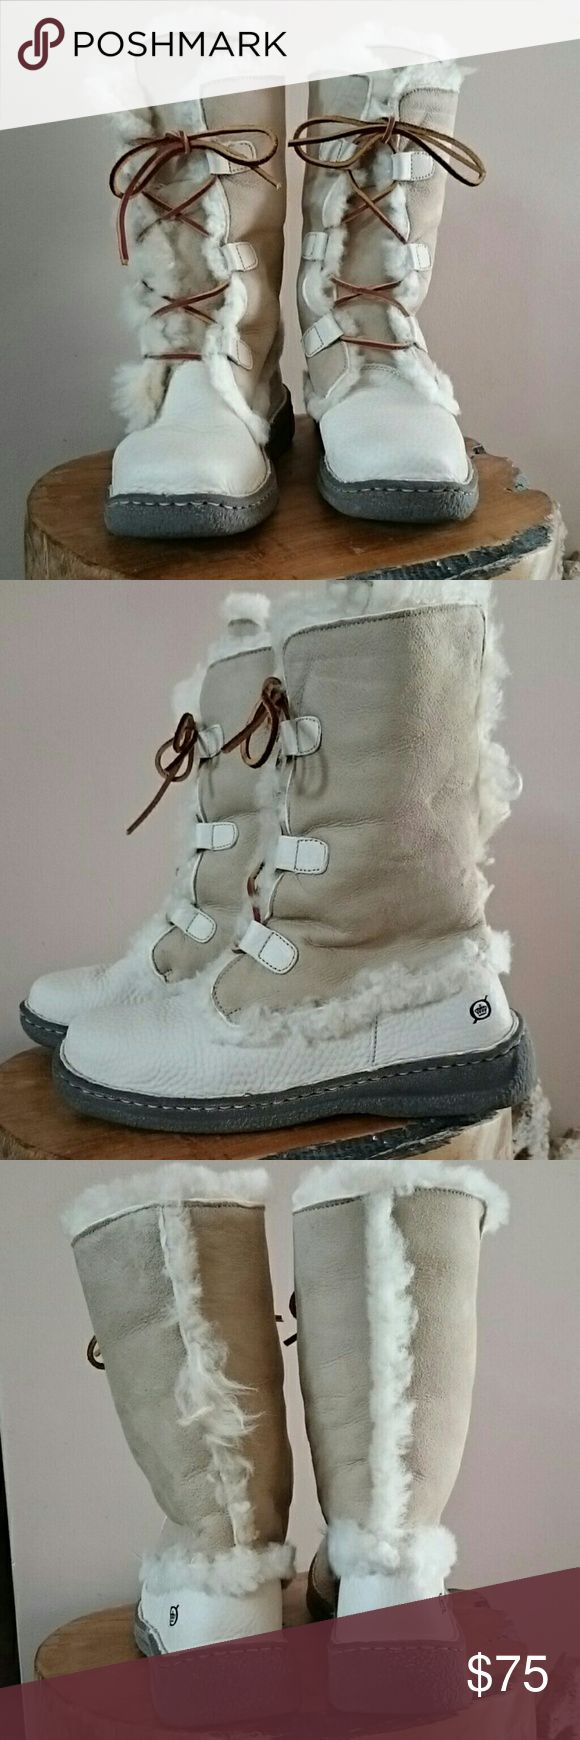 Born Nome boots Beautiful, comfortable leather and shearling Nome boots. Worn once. Great shape. Born Shoes Winter & Rain Boots